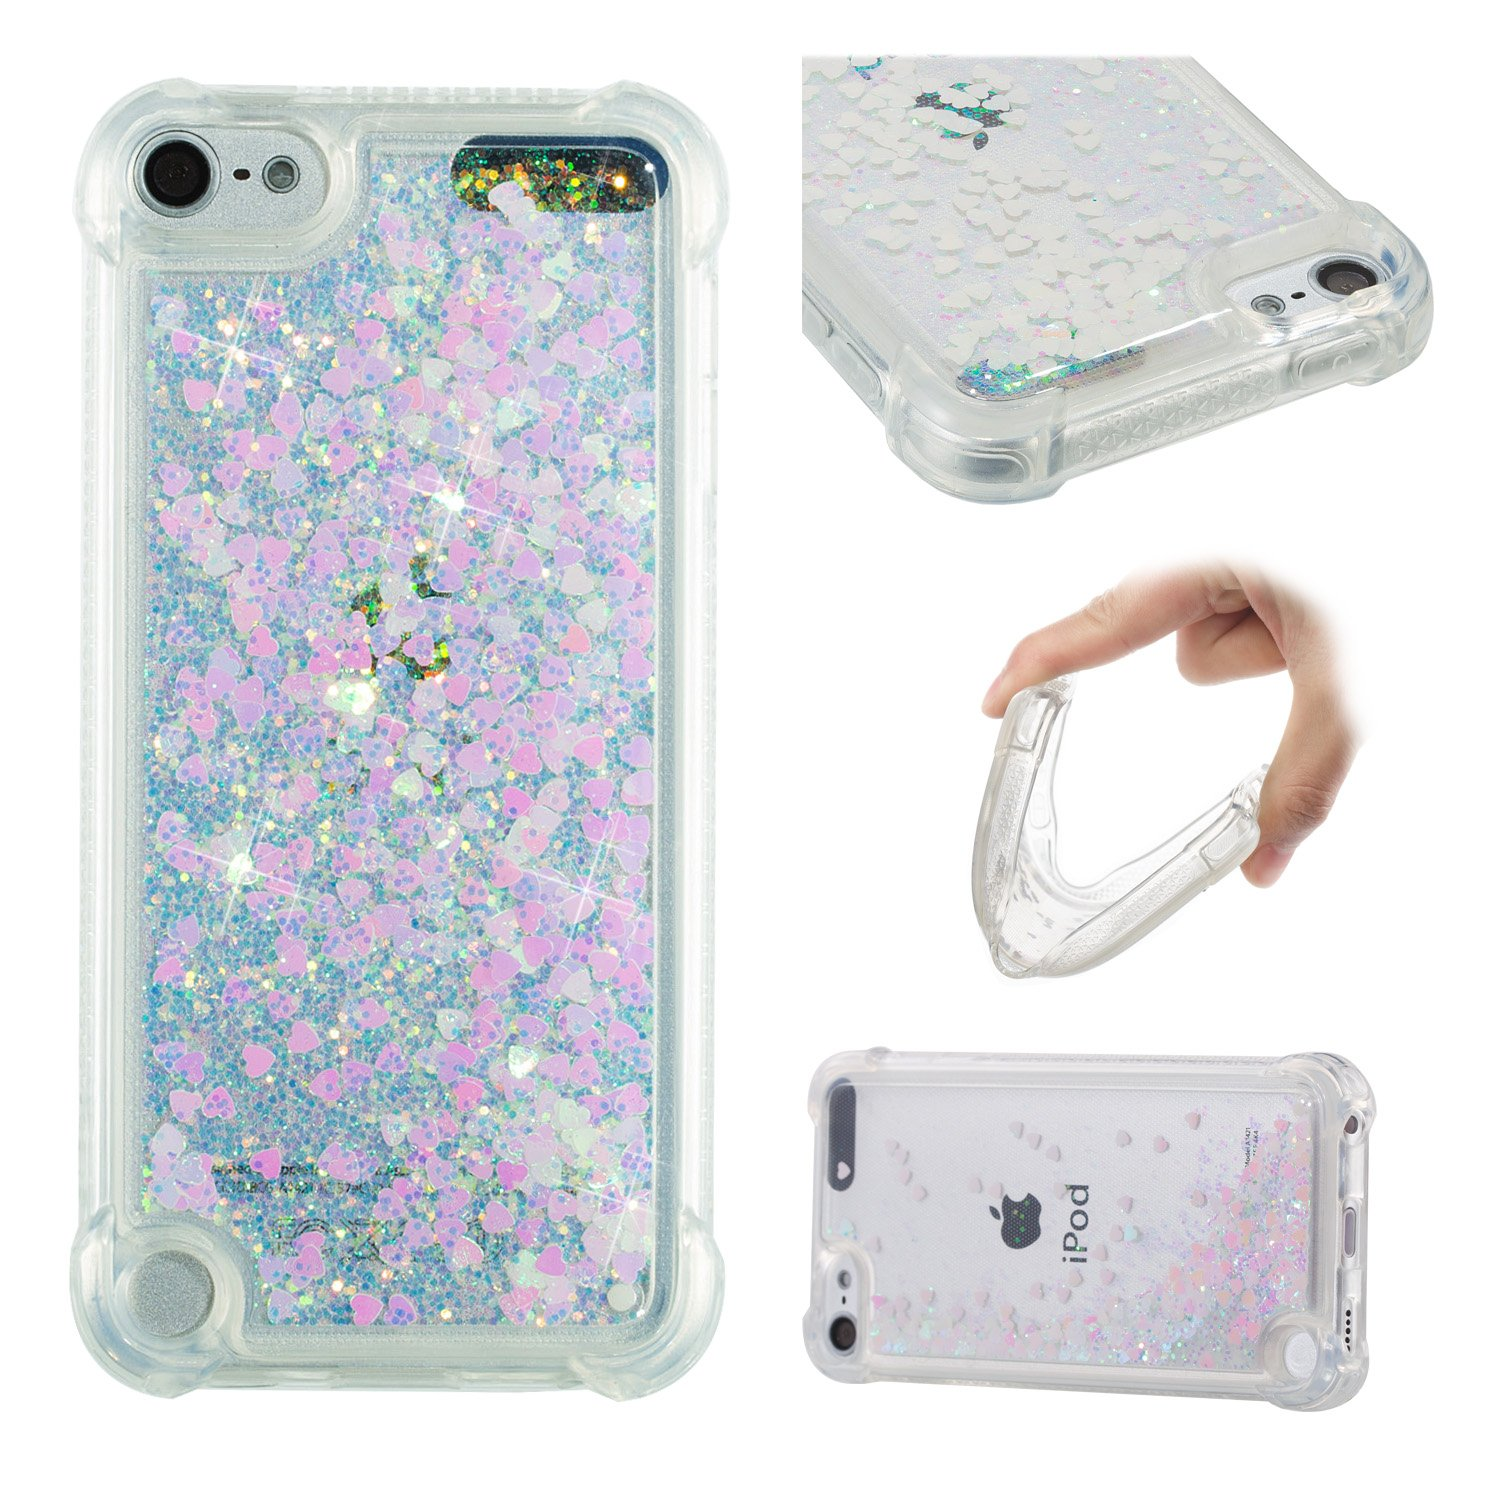 iPod Touch 6 Case, Touch 5 Case, Dynamic Liquid Quicksand Case Funny Face Pattern Bling Sparkle Shining Glitter Soft Clear TPU Gel Protective Cover For Apple iPod Touch 5 6th Generation candy house wh1988